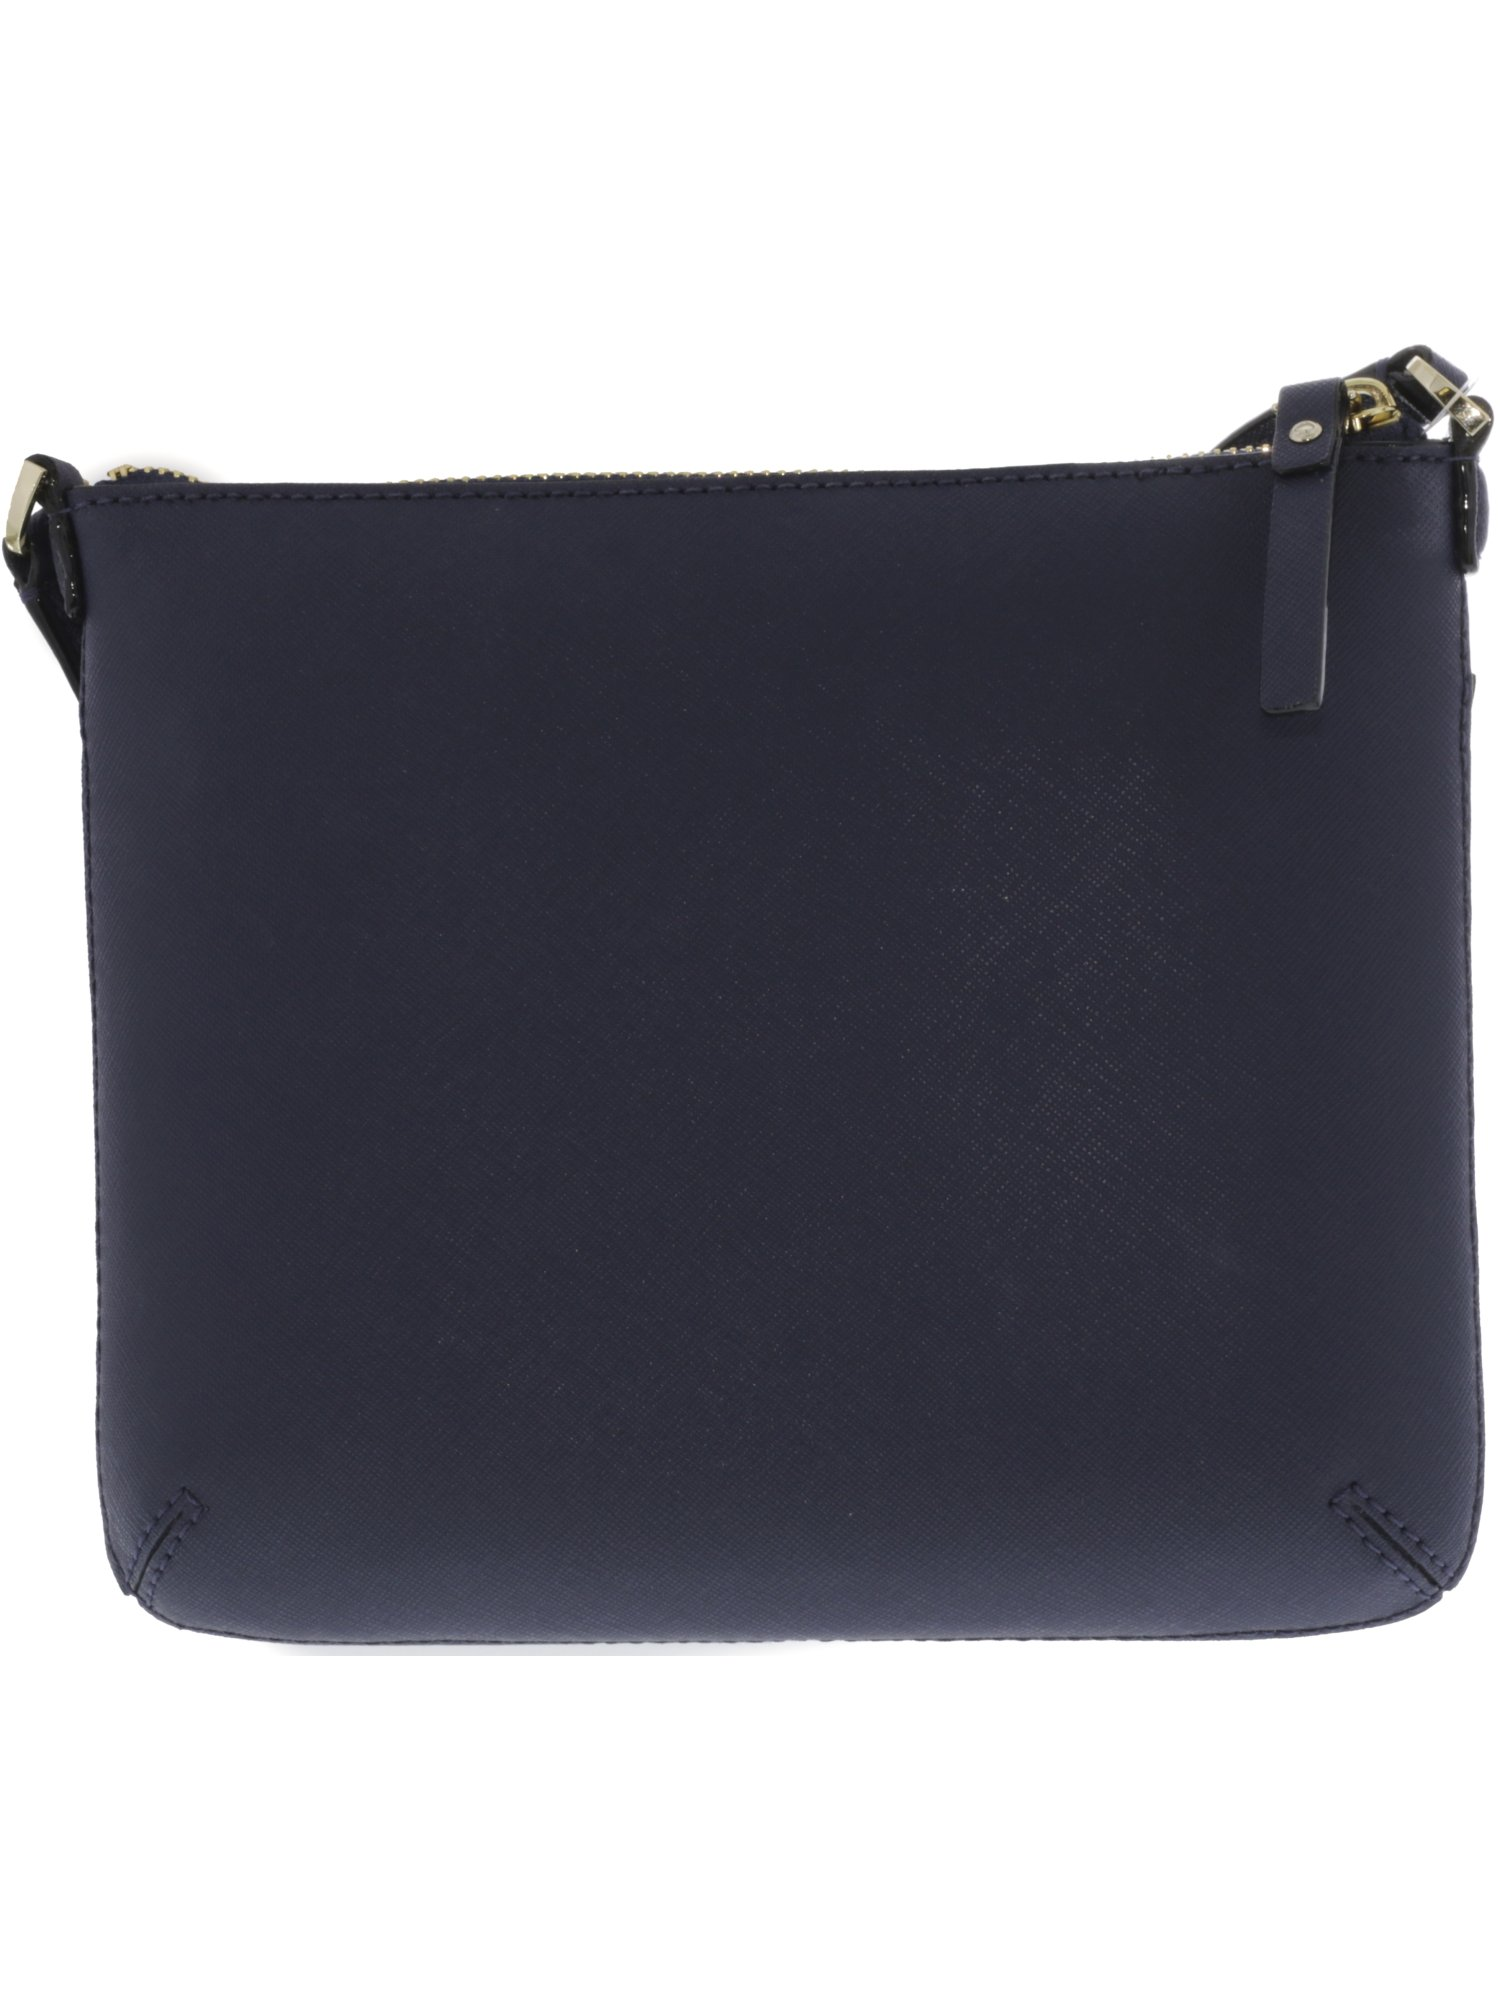 Kate Spade Cross Body Handbags - Image Of Handbags Imageorp.co 0e3016fd08